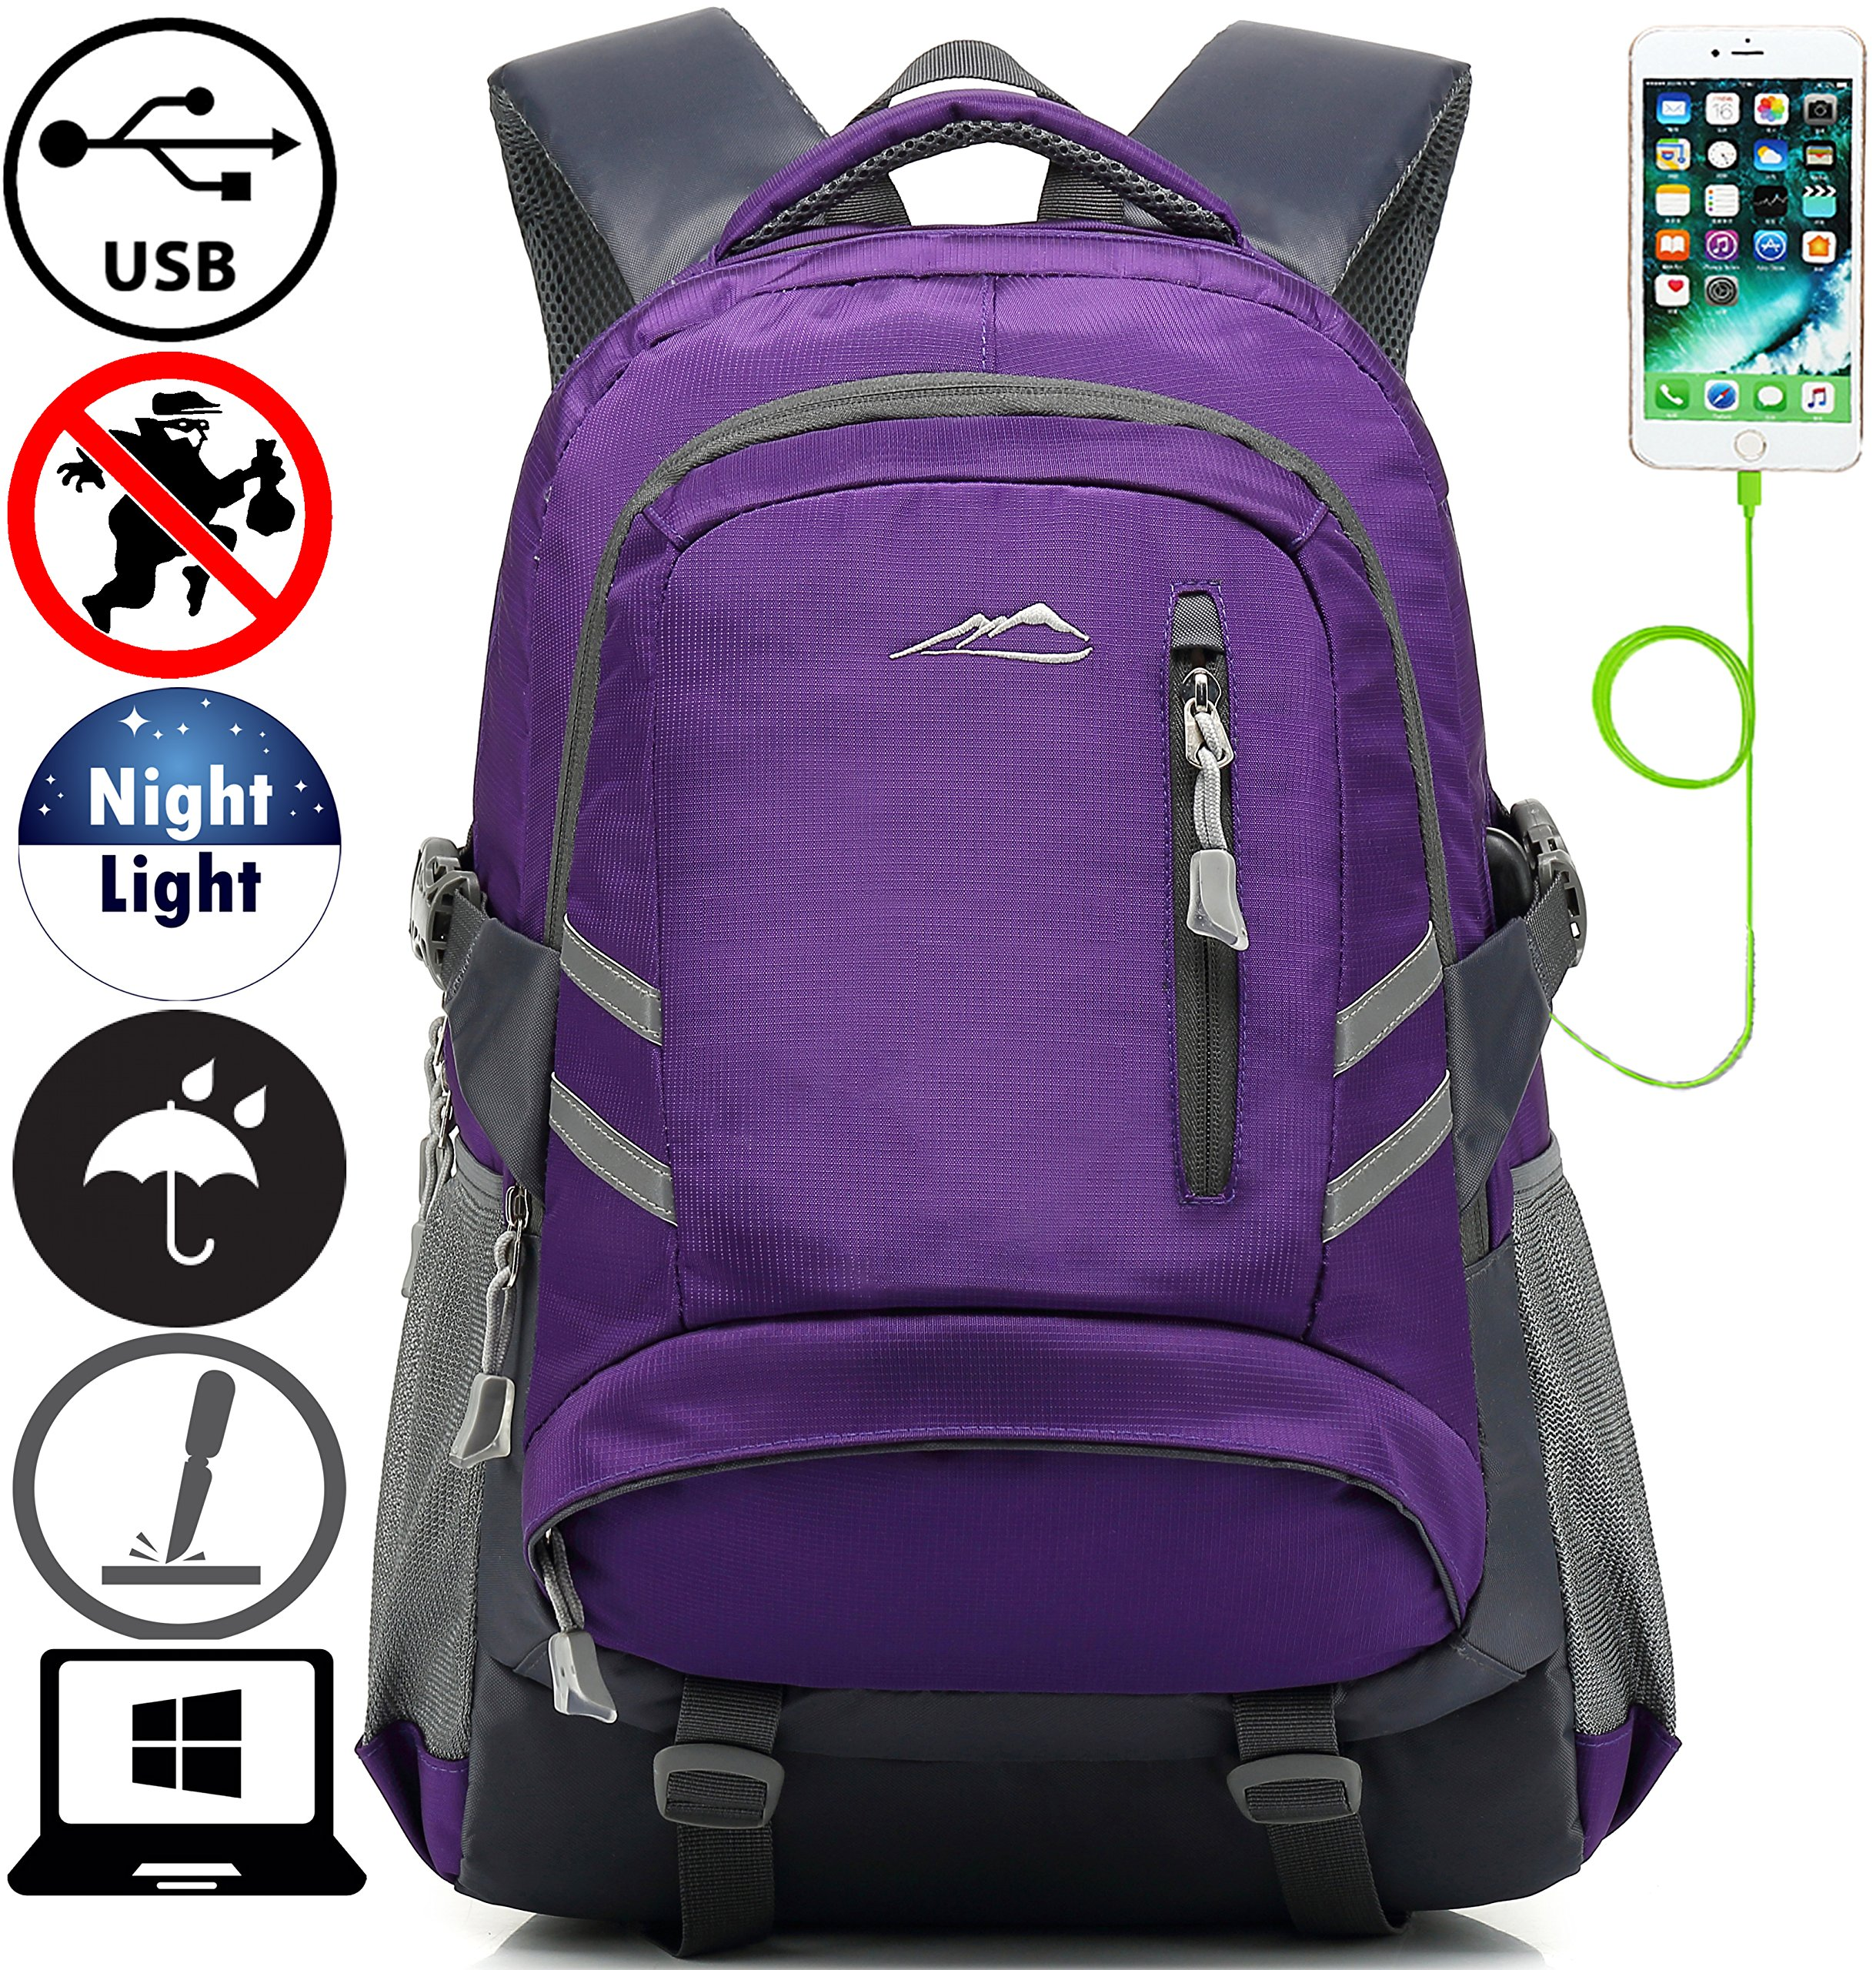 Backpack Bookbag For School College Student Travel Business With USB Charging Port Water Resistant Fit Laptop Up to 15.6 Inch Anti theft Night Light Reflective (Purple) by ProEtrade